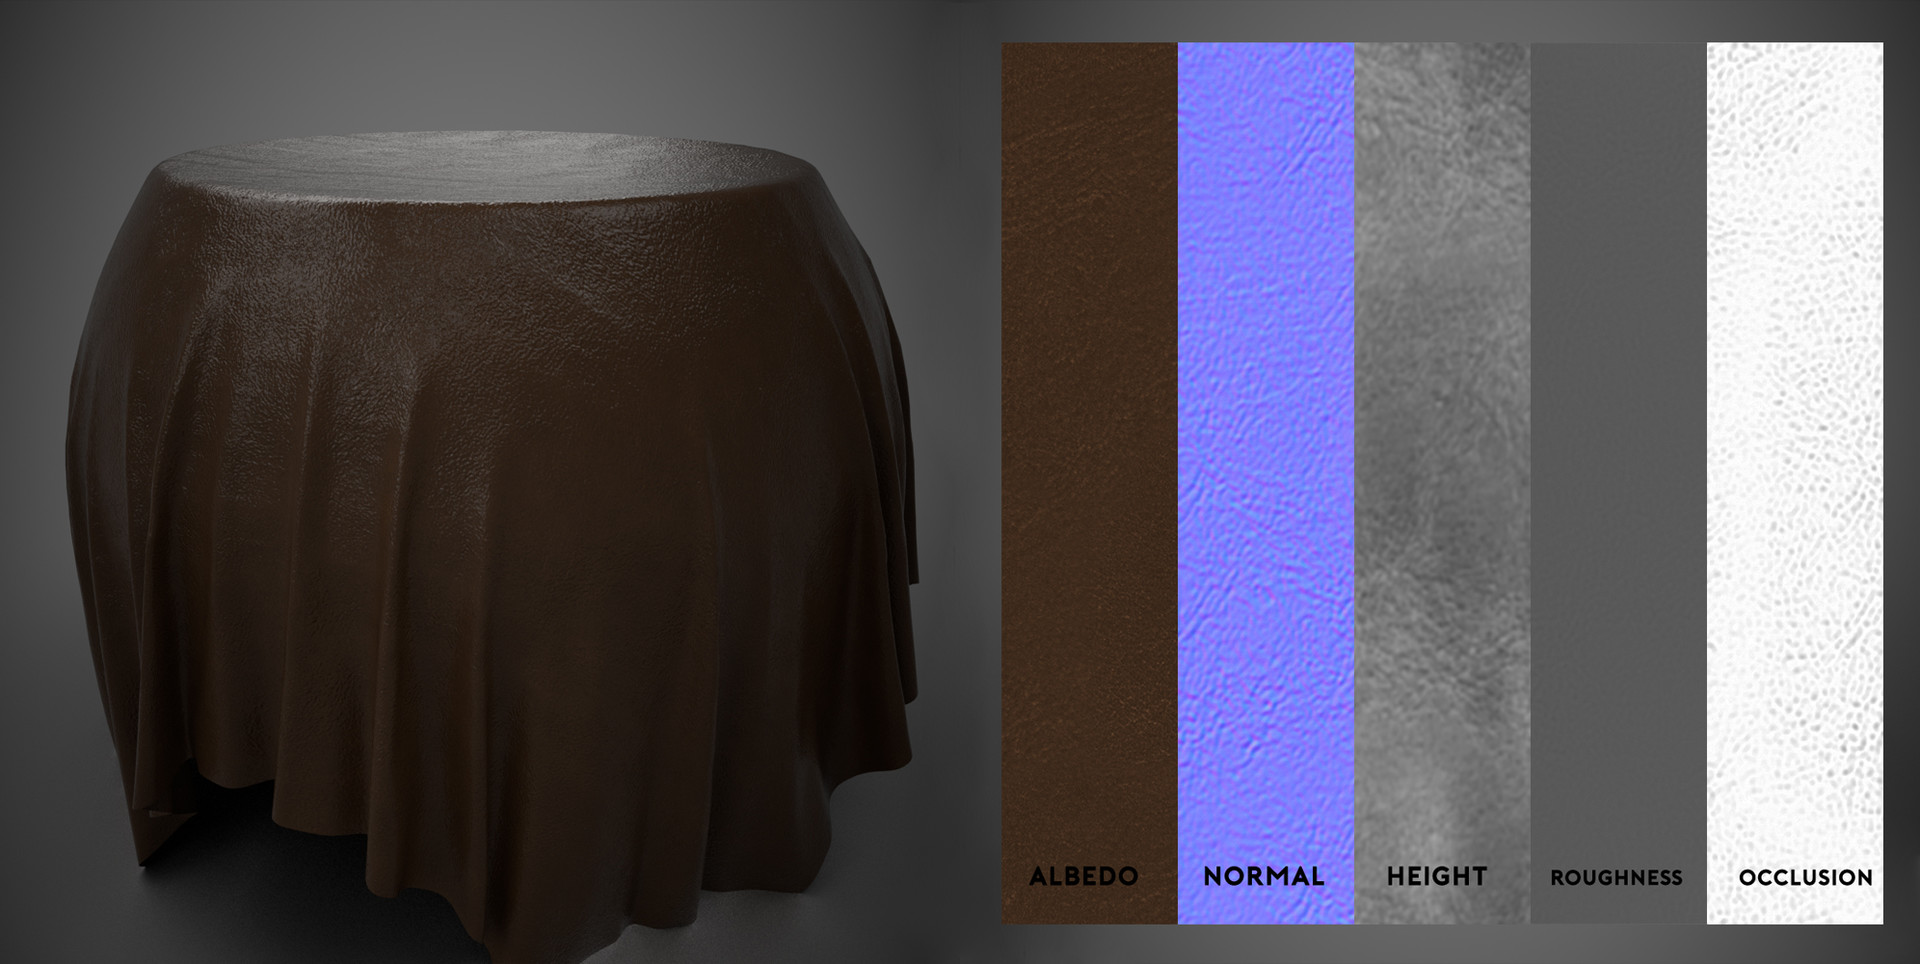 Maltic Leather - Substance Material Scan